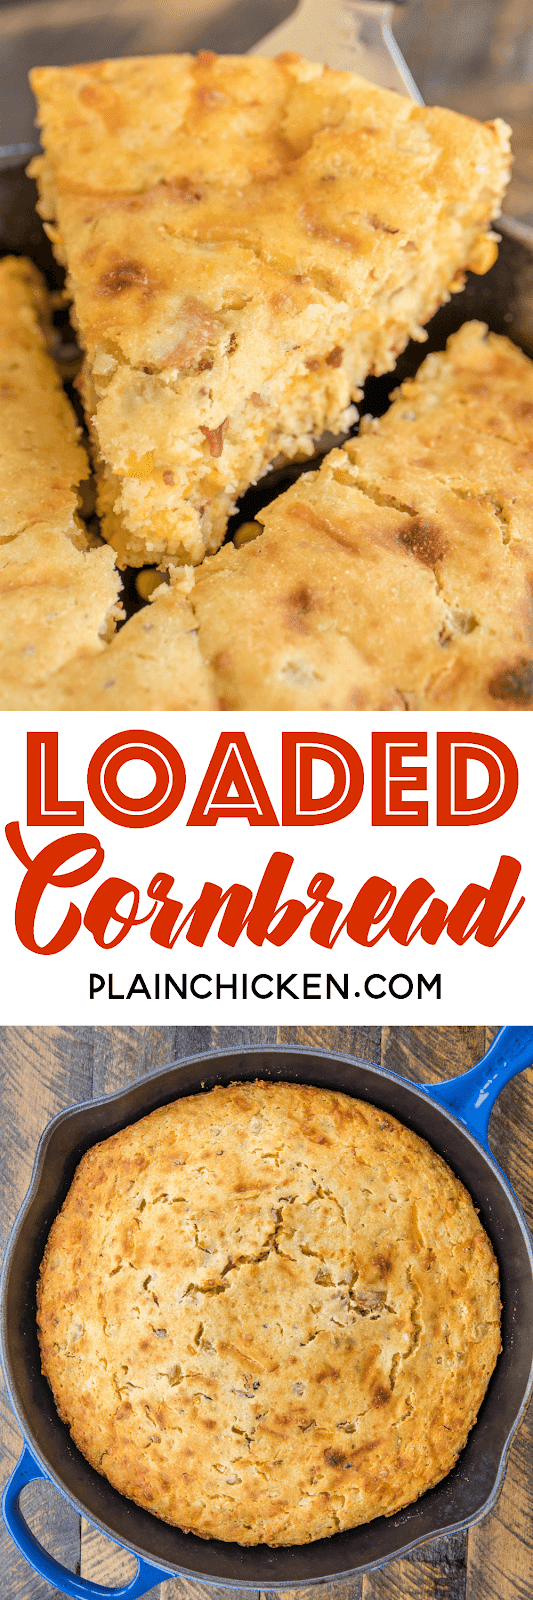 Loaded Cornbread - our favorite cornbread loaded with cheddar cheese, green chiles, creamed corn and bacon! OMG! I could have made a meal out of this yummy cornbread. Great side dish for soups and grilled meats. Give this a try ASAP! SO good!! #cornbread #bacon #bread #sidedish